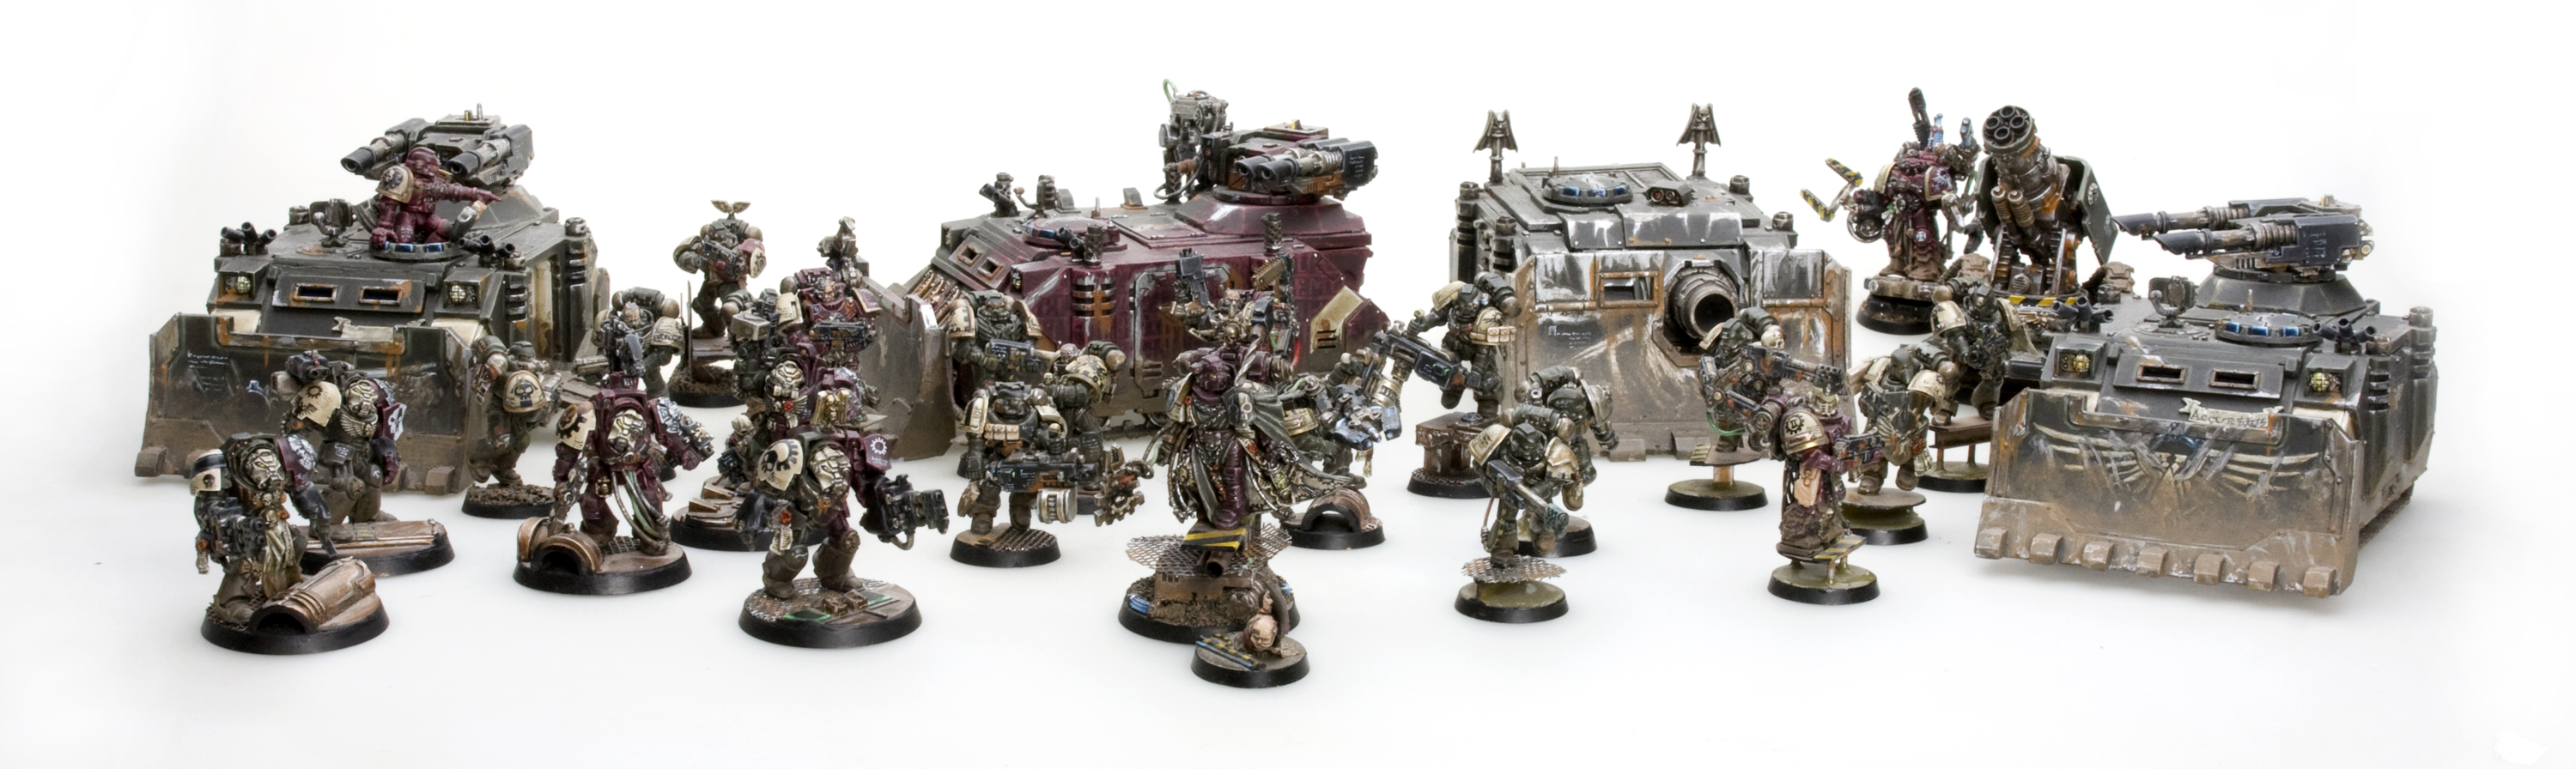 White Dwarf Battle Reports Online (page 2) - Pics about space